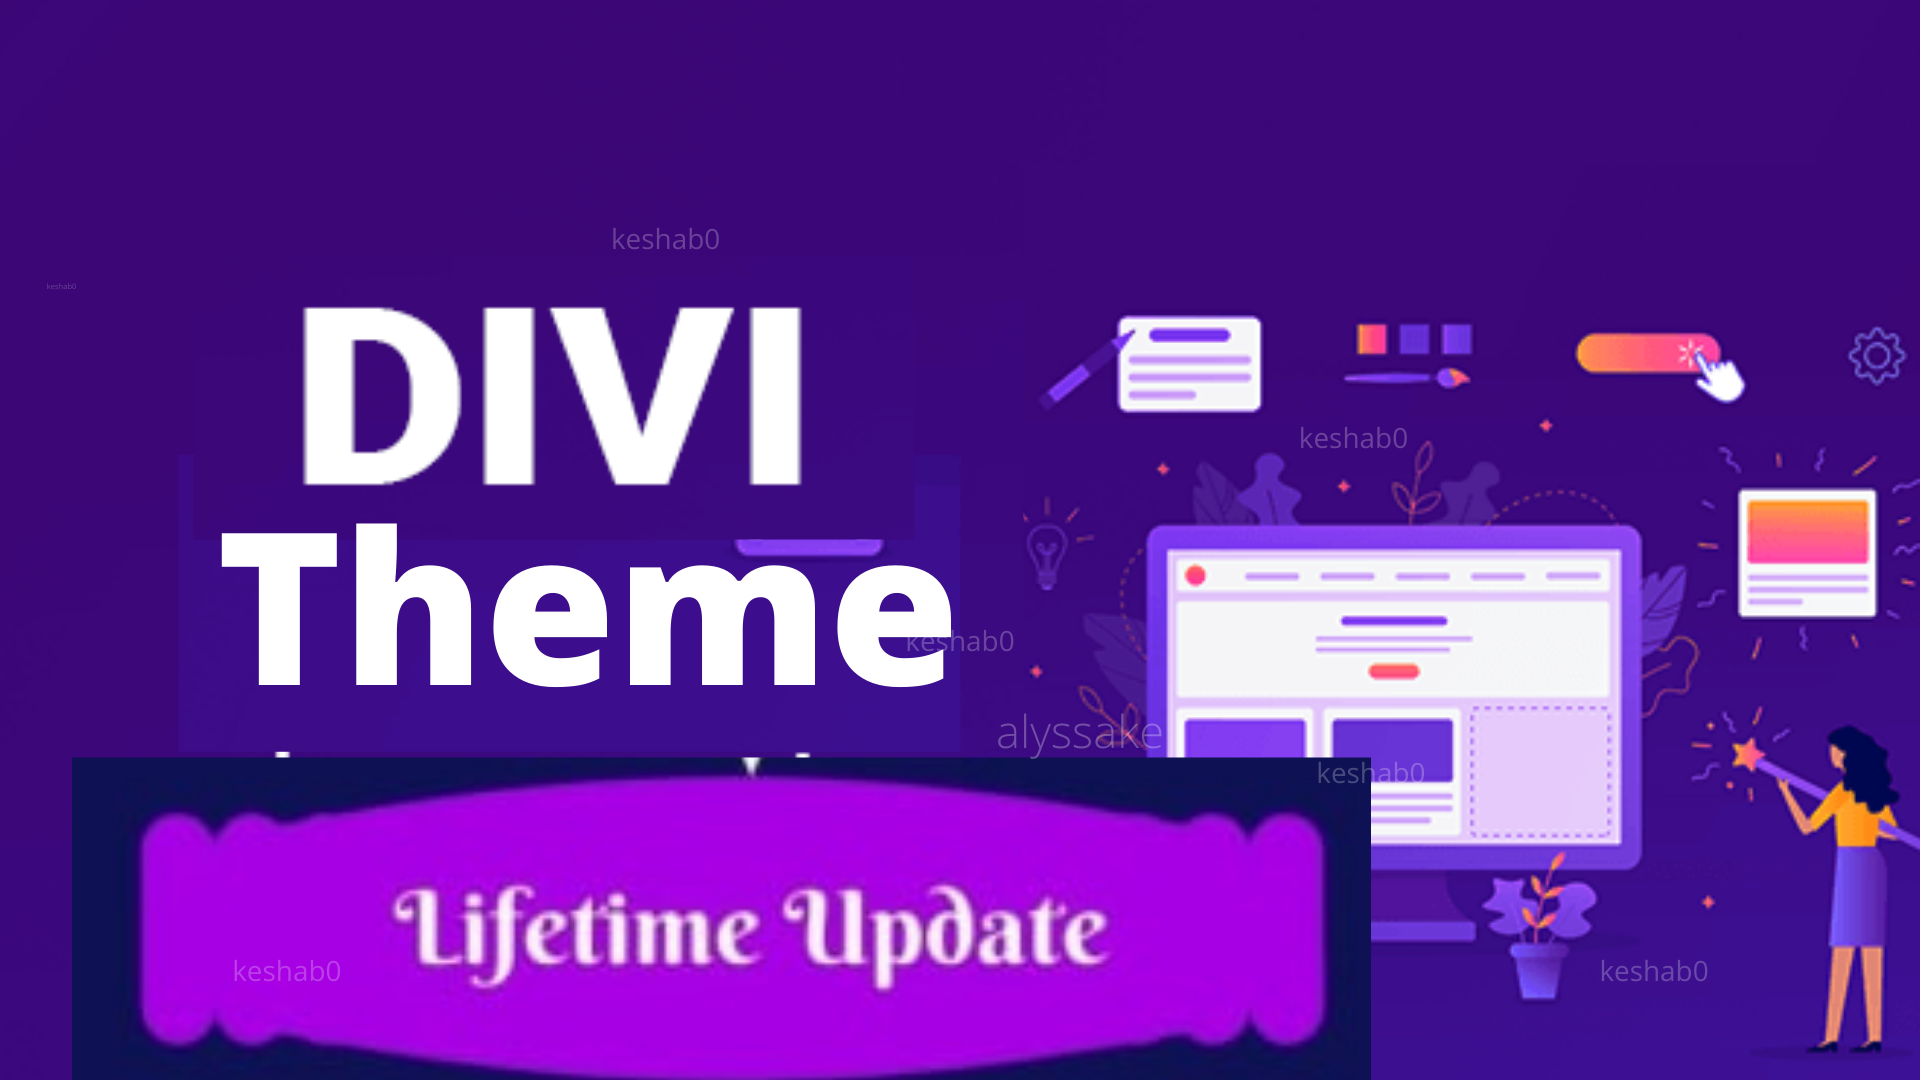 Install divi theme with lifetime updates